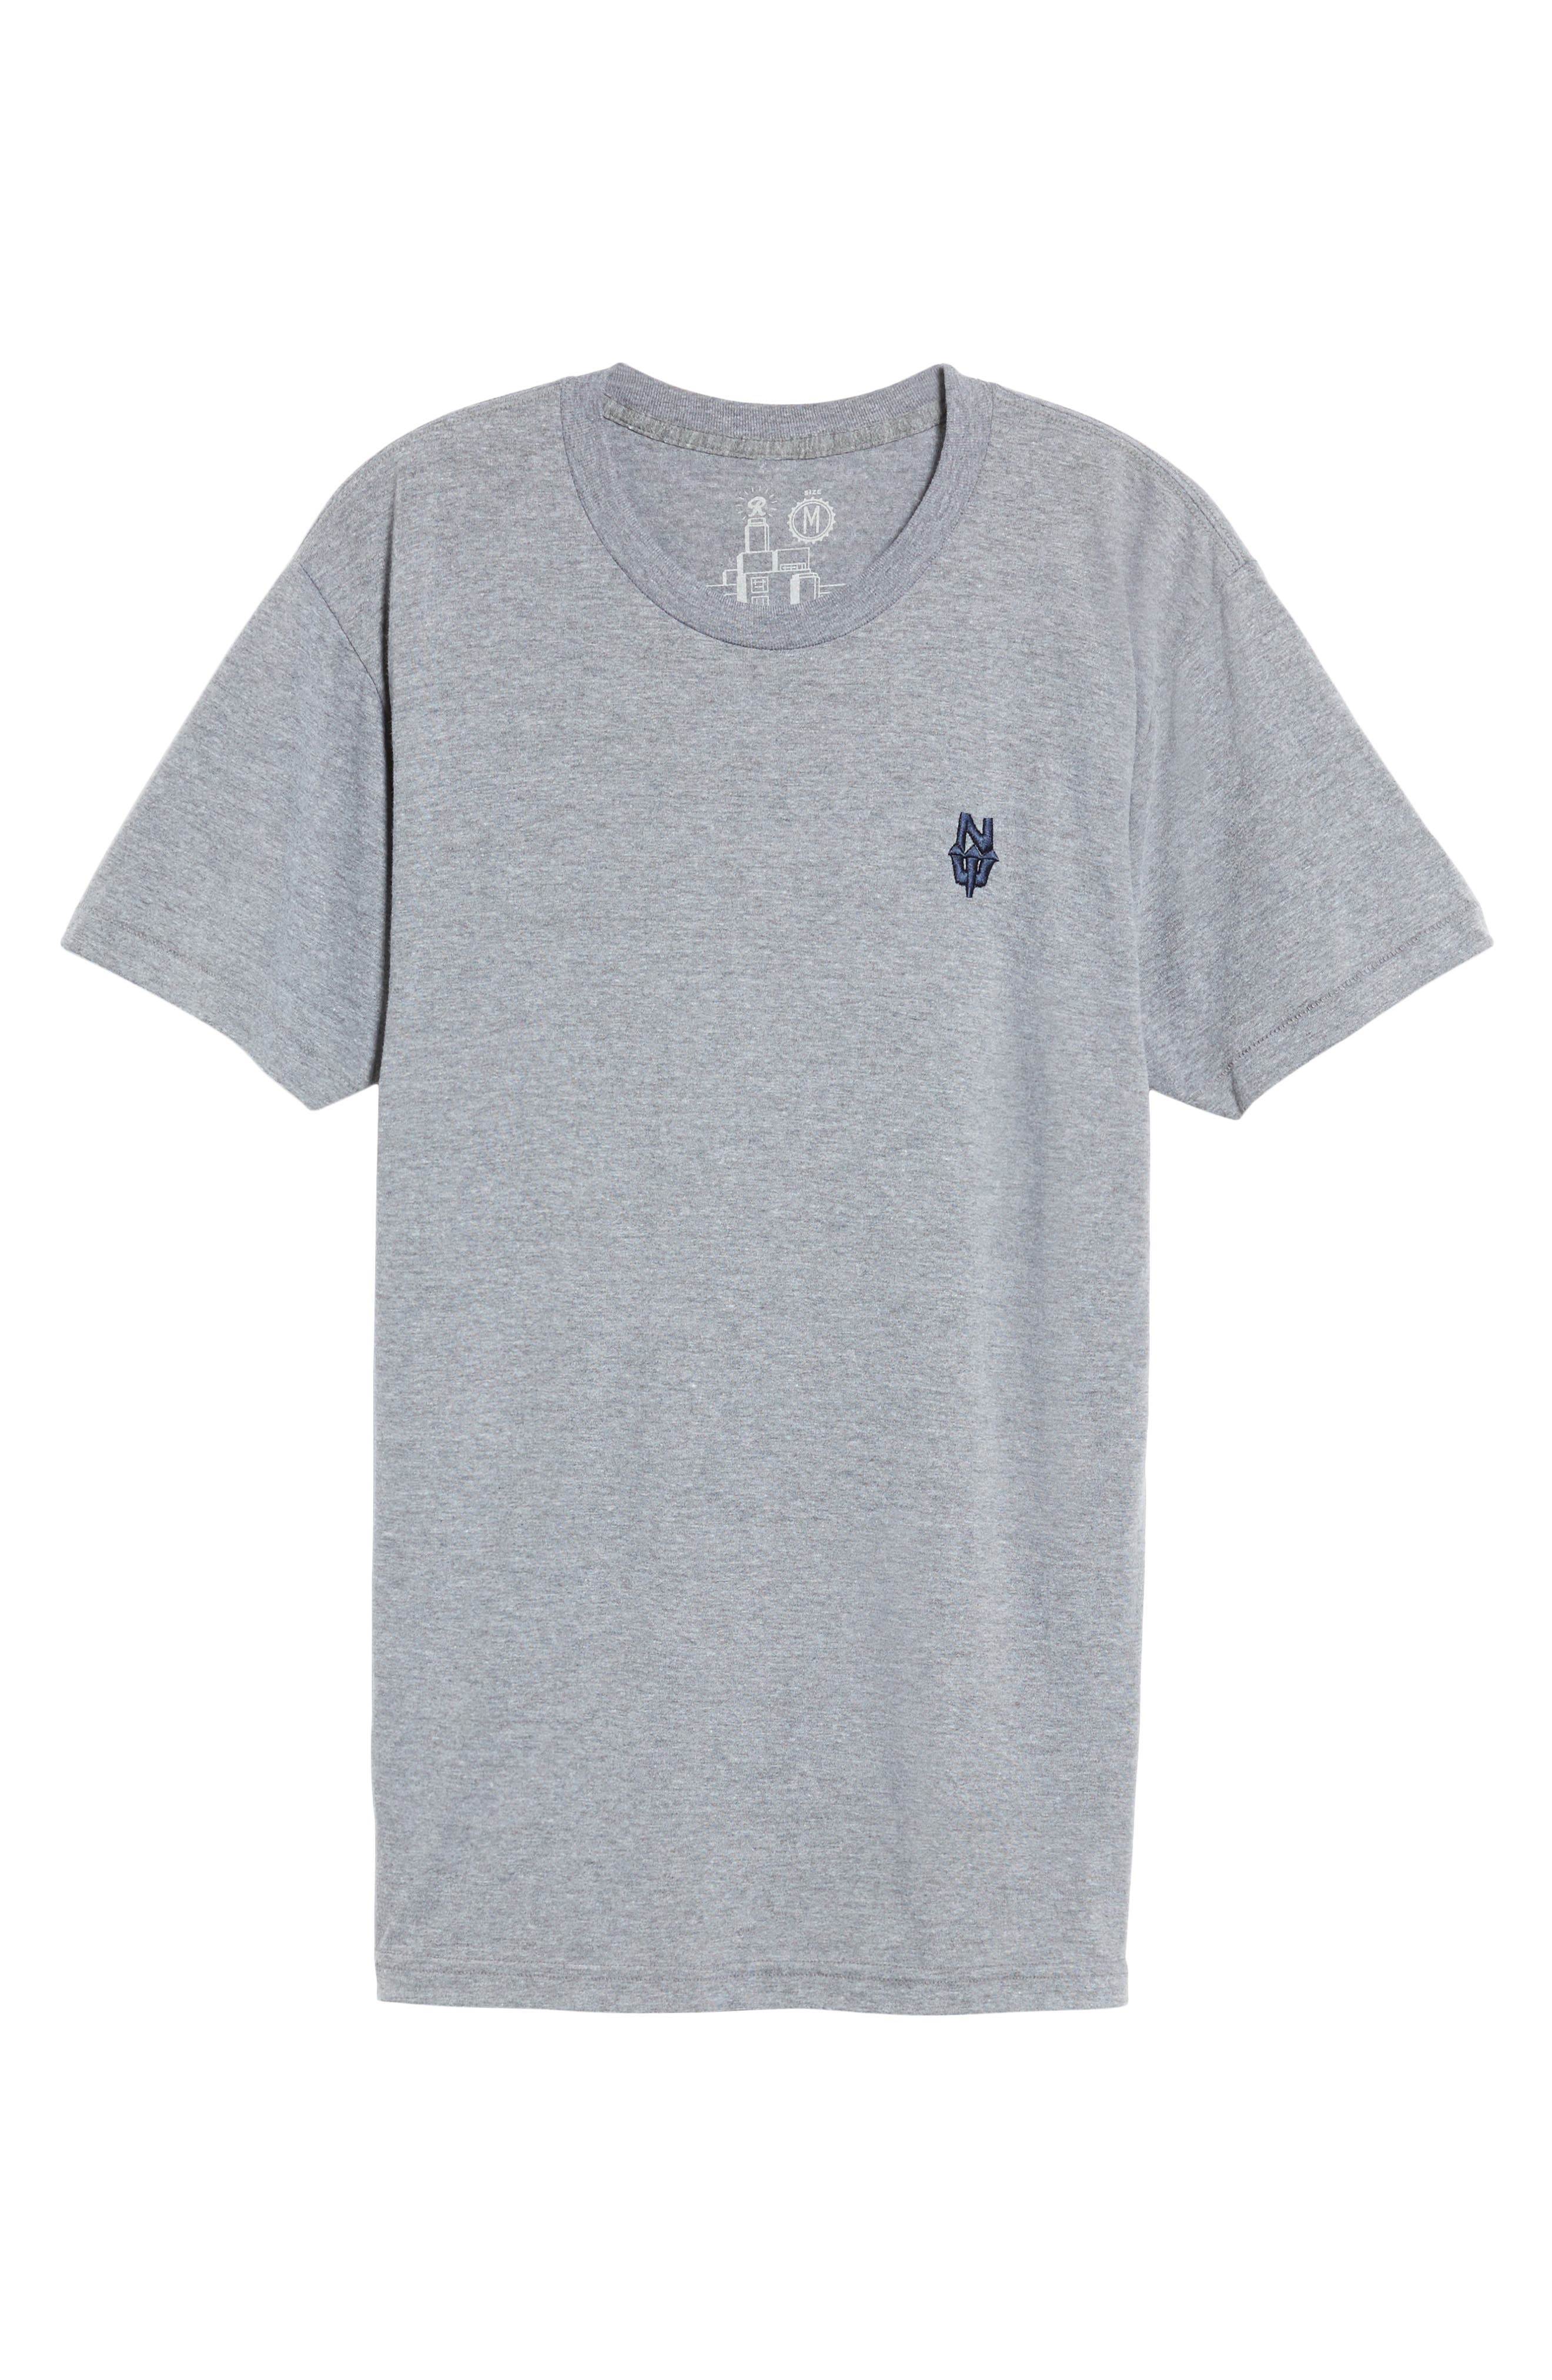 NW Trident Embroidered T-Shirt,                             Alternate thumbnail 17, color,